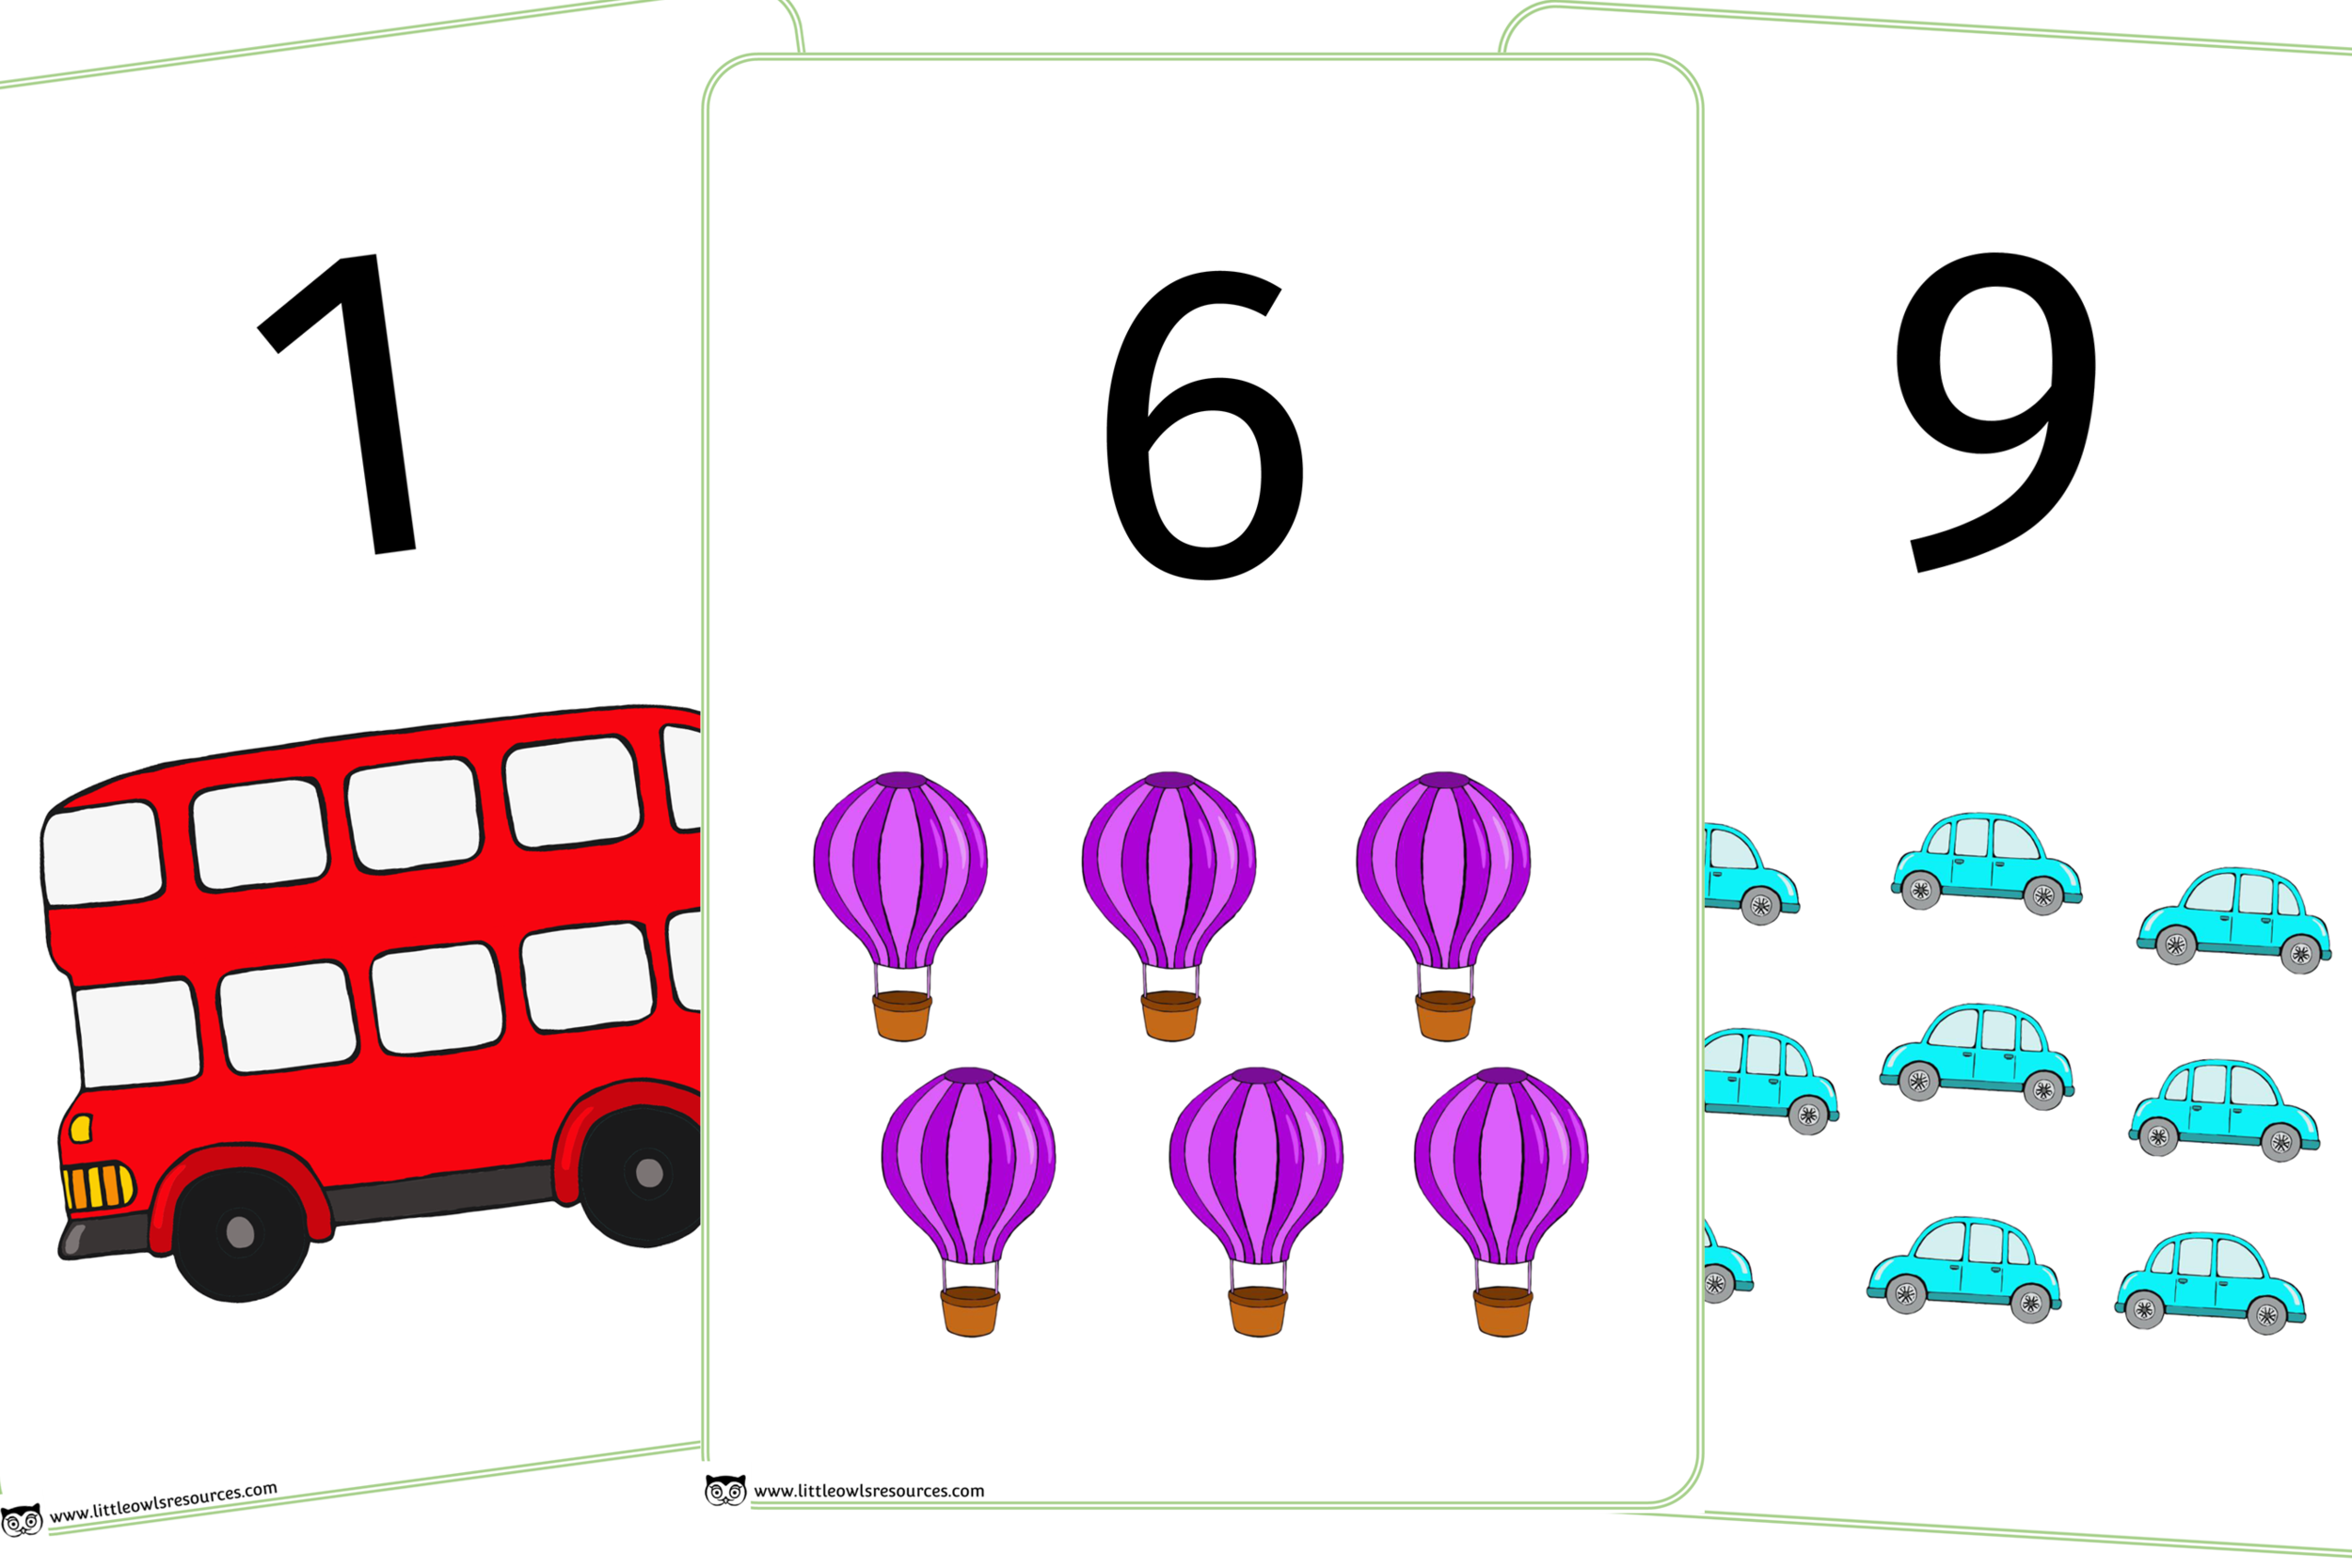 VehicleCounting1-10Cover.png